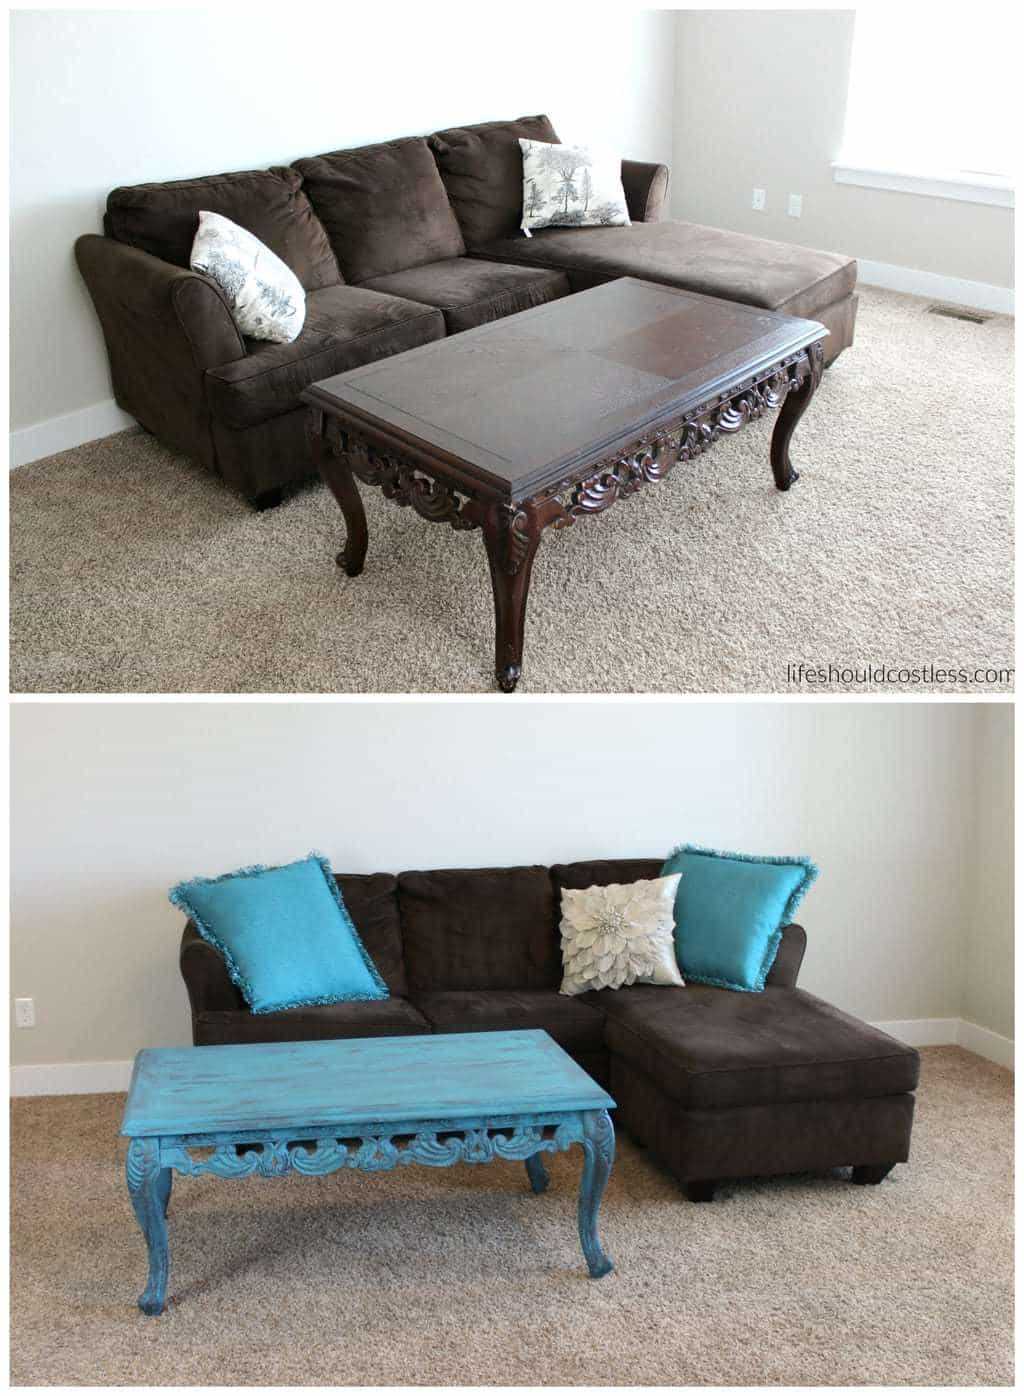 Turquoise Coffee Table Make-Over In Americana Decor Treasure Before and After Together